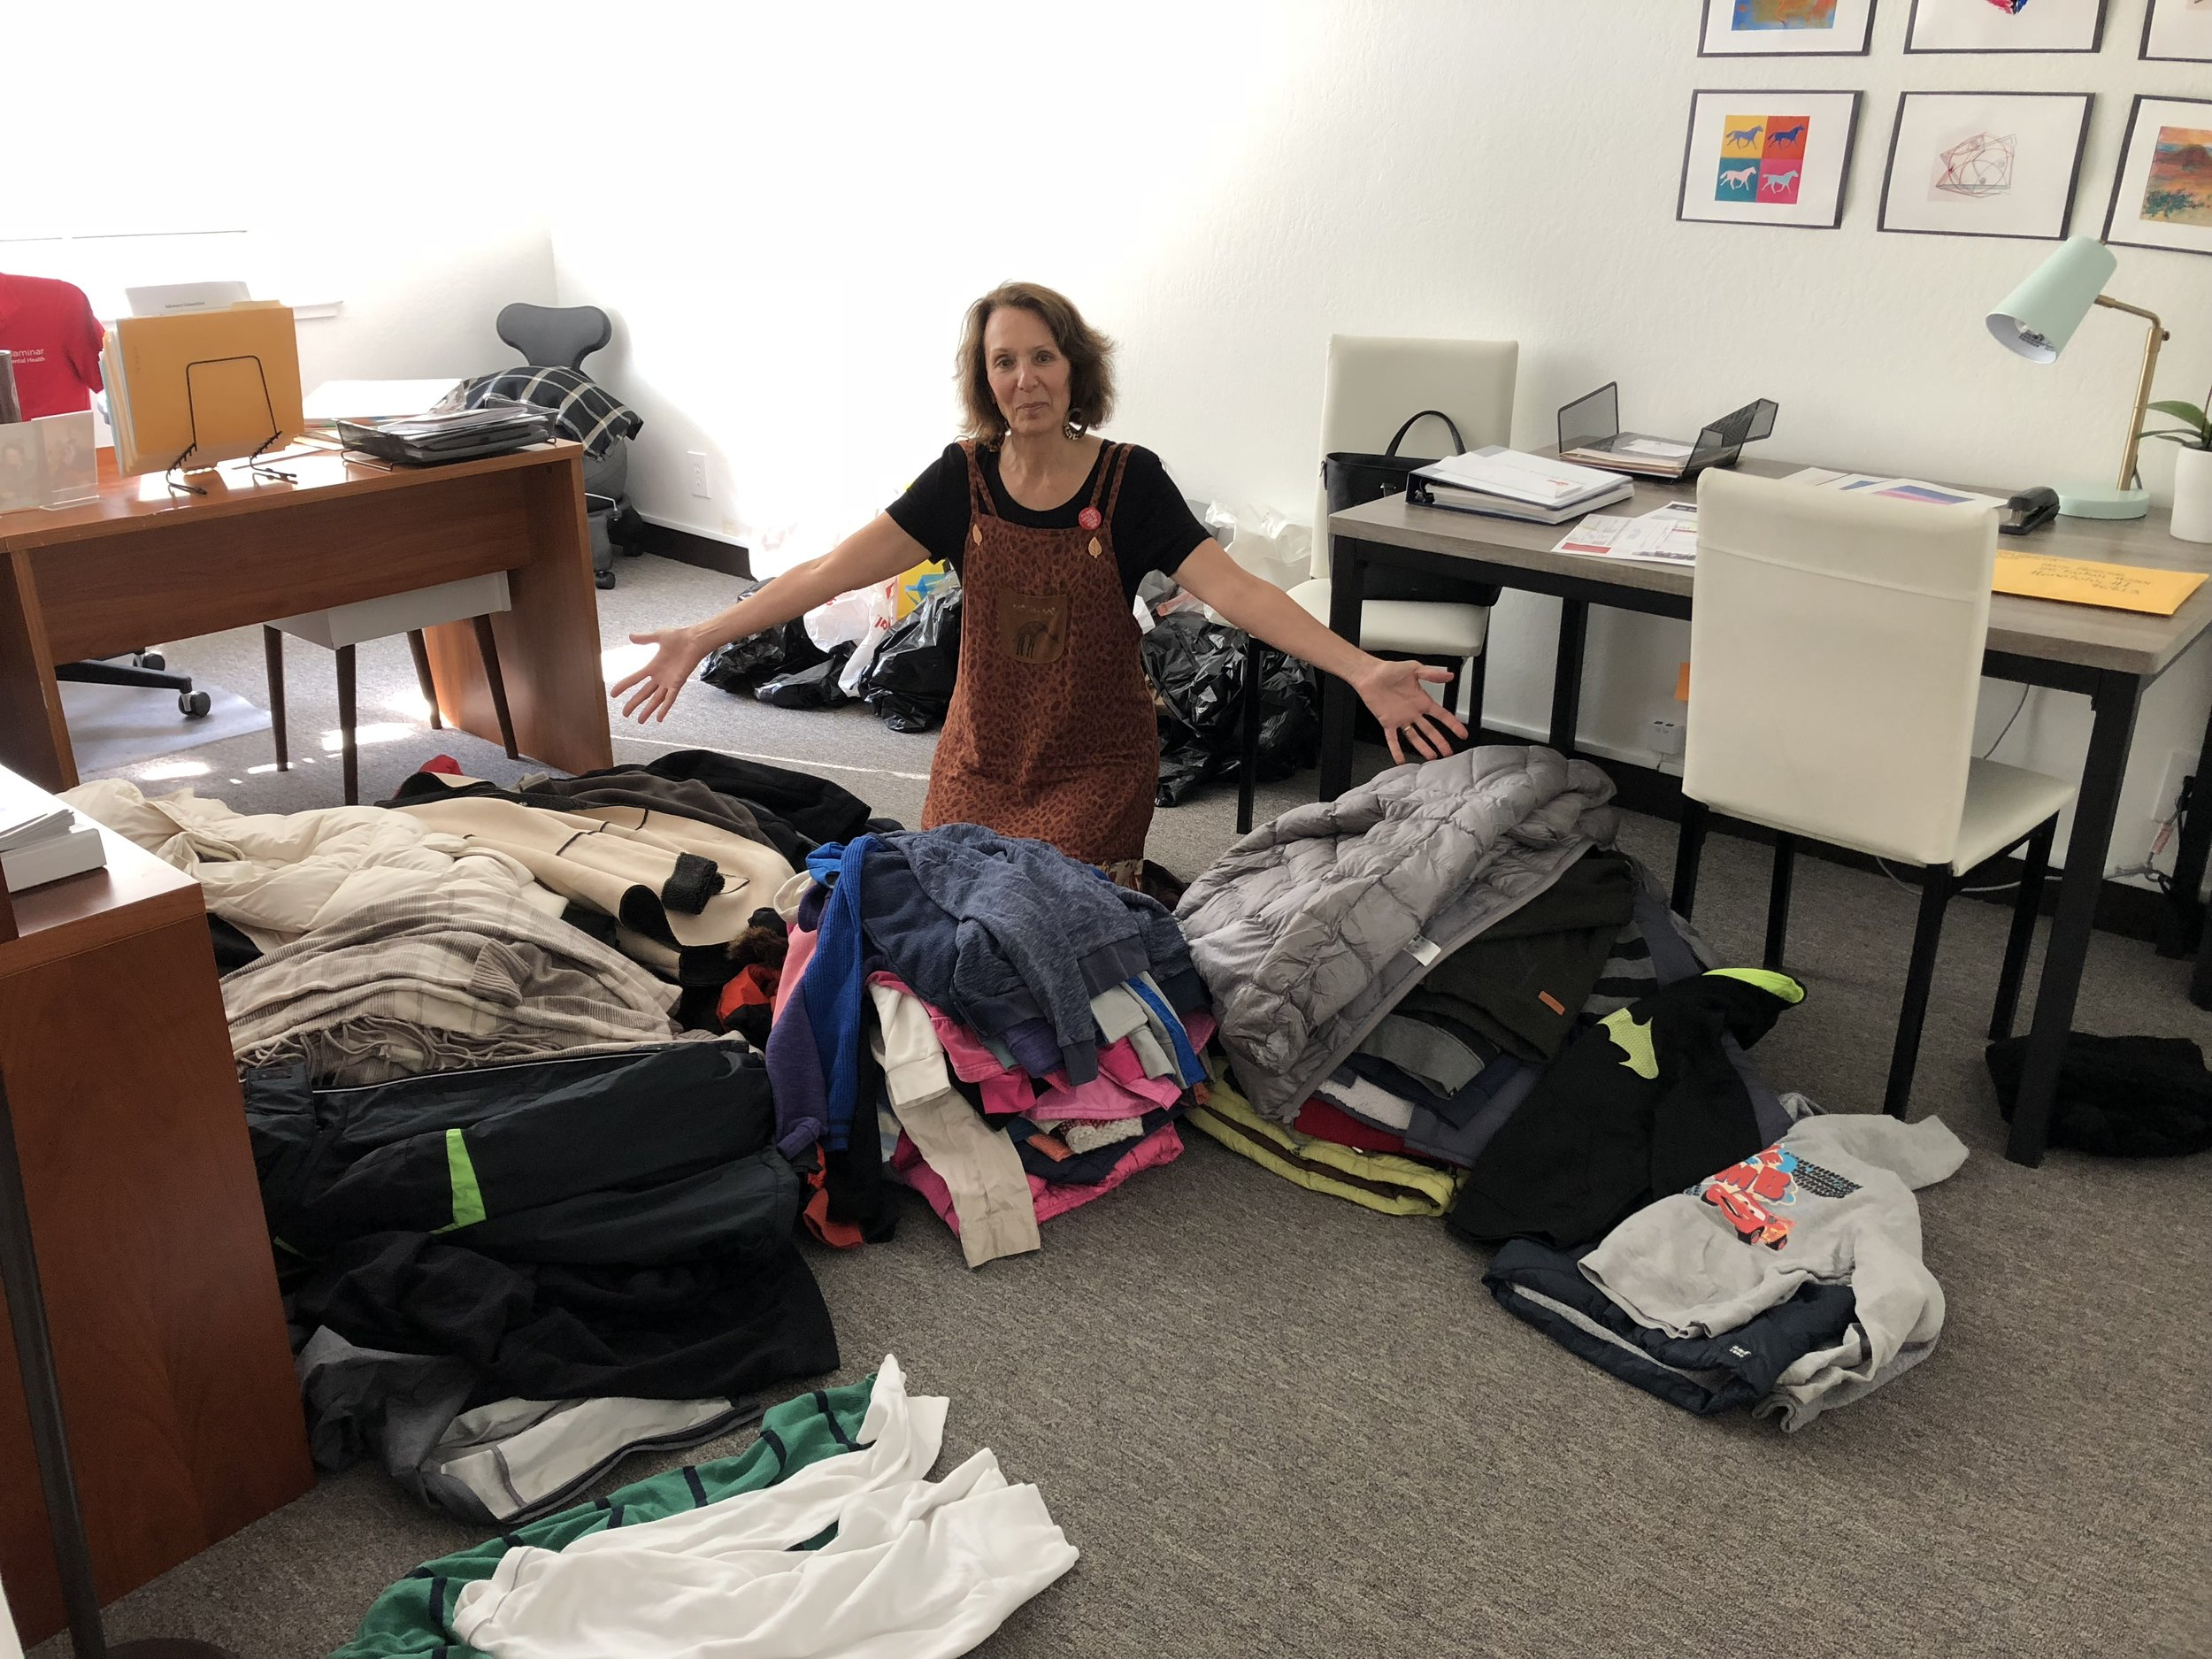 Harriet Pecot, Caminar's Director of Development, with over 100 warm coats donated by Laurel Elementary School in San Mateo.